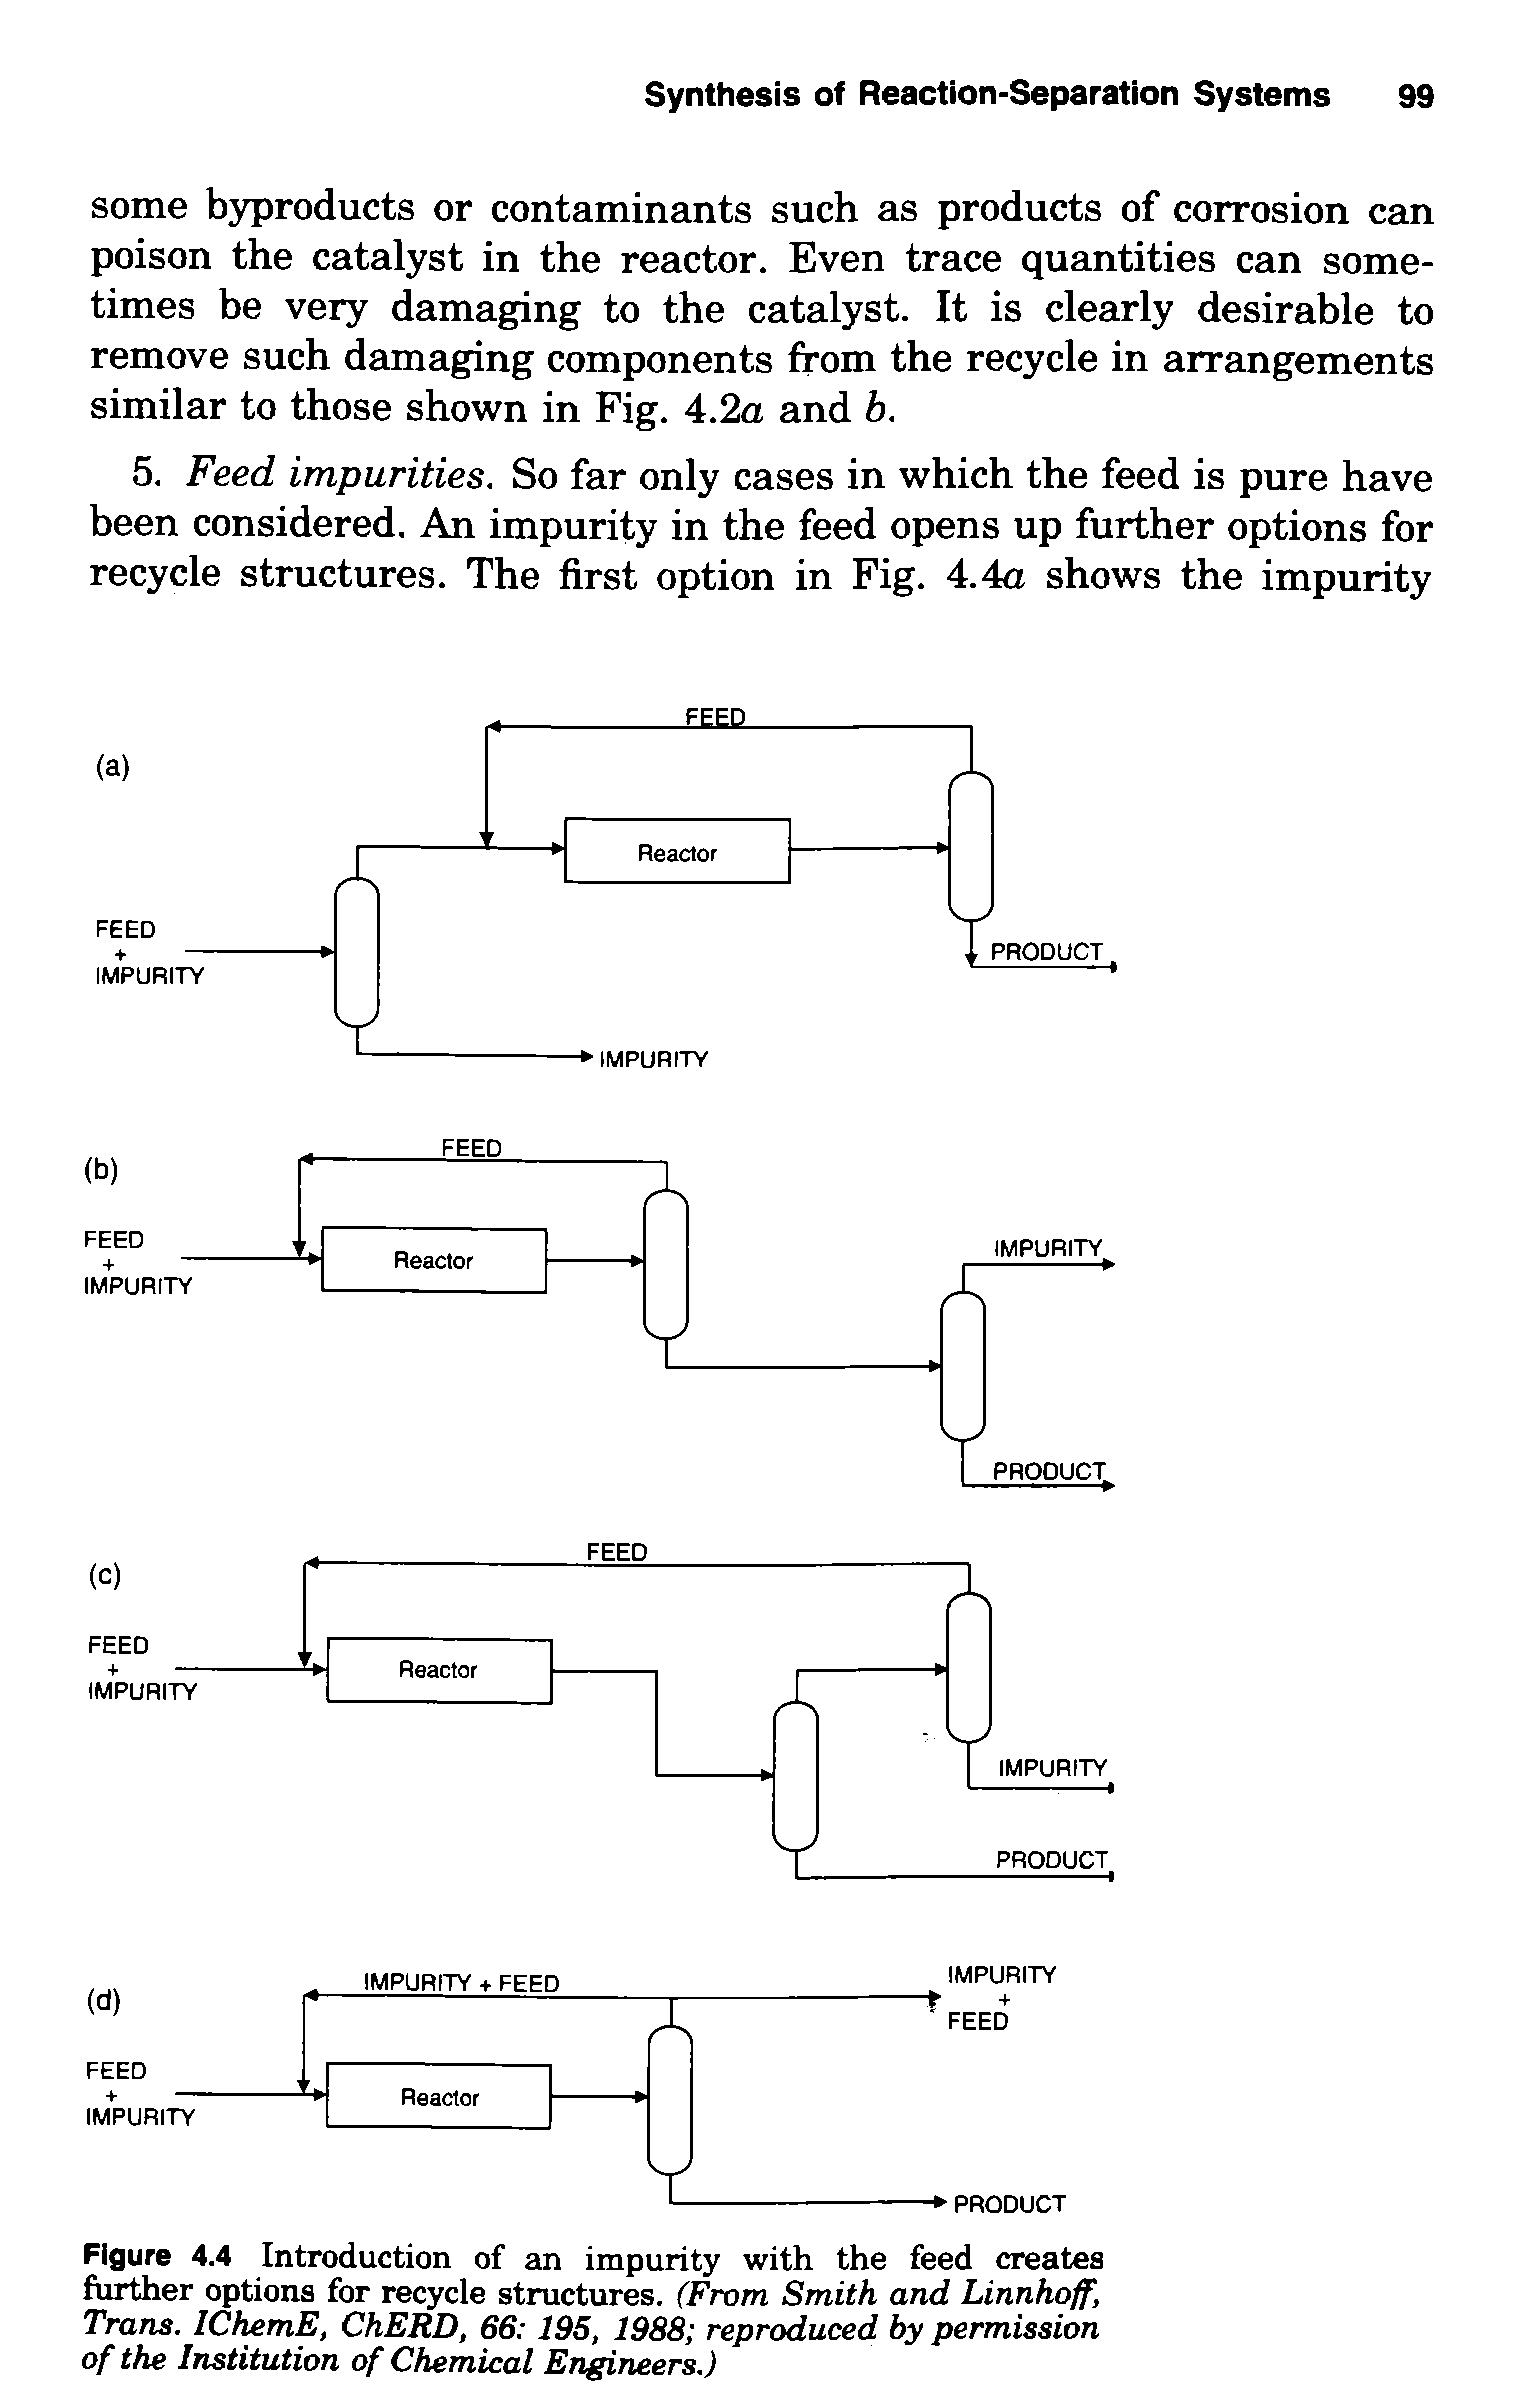 "Figure 4.4 Introduction of an <a href=""/info/with_impurities"">impurity with</a> the feed creates further options for recycle structures. (From Smith and Linnhoff, Trans. IChemE, ChERD, 66 195, 1988 reproduced by permission of the Institution of Chemical Engineers.)"